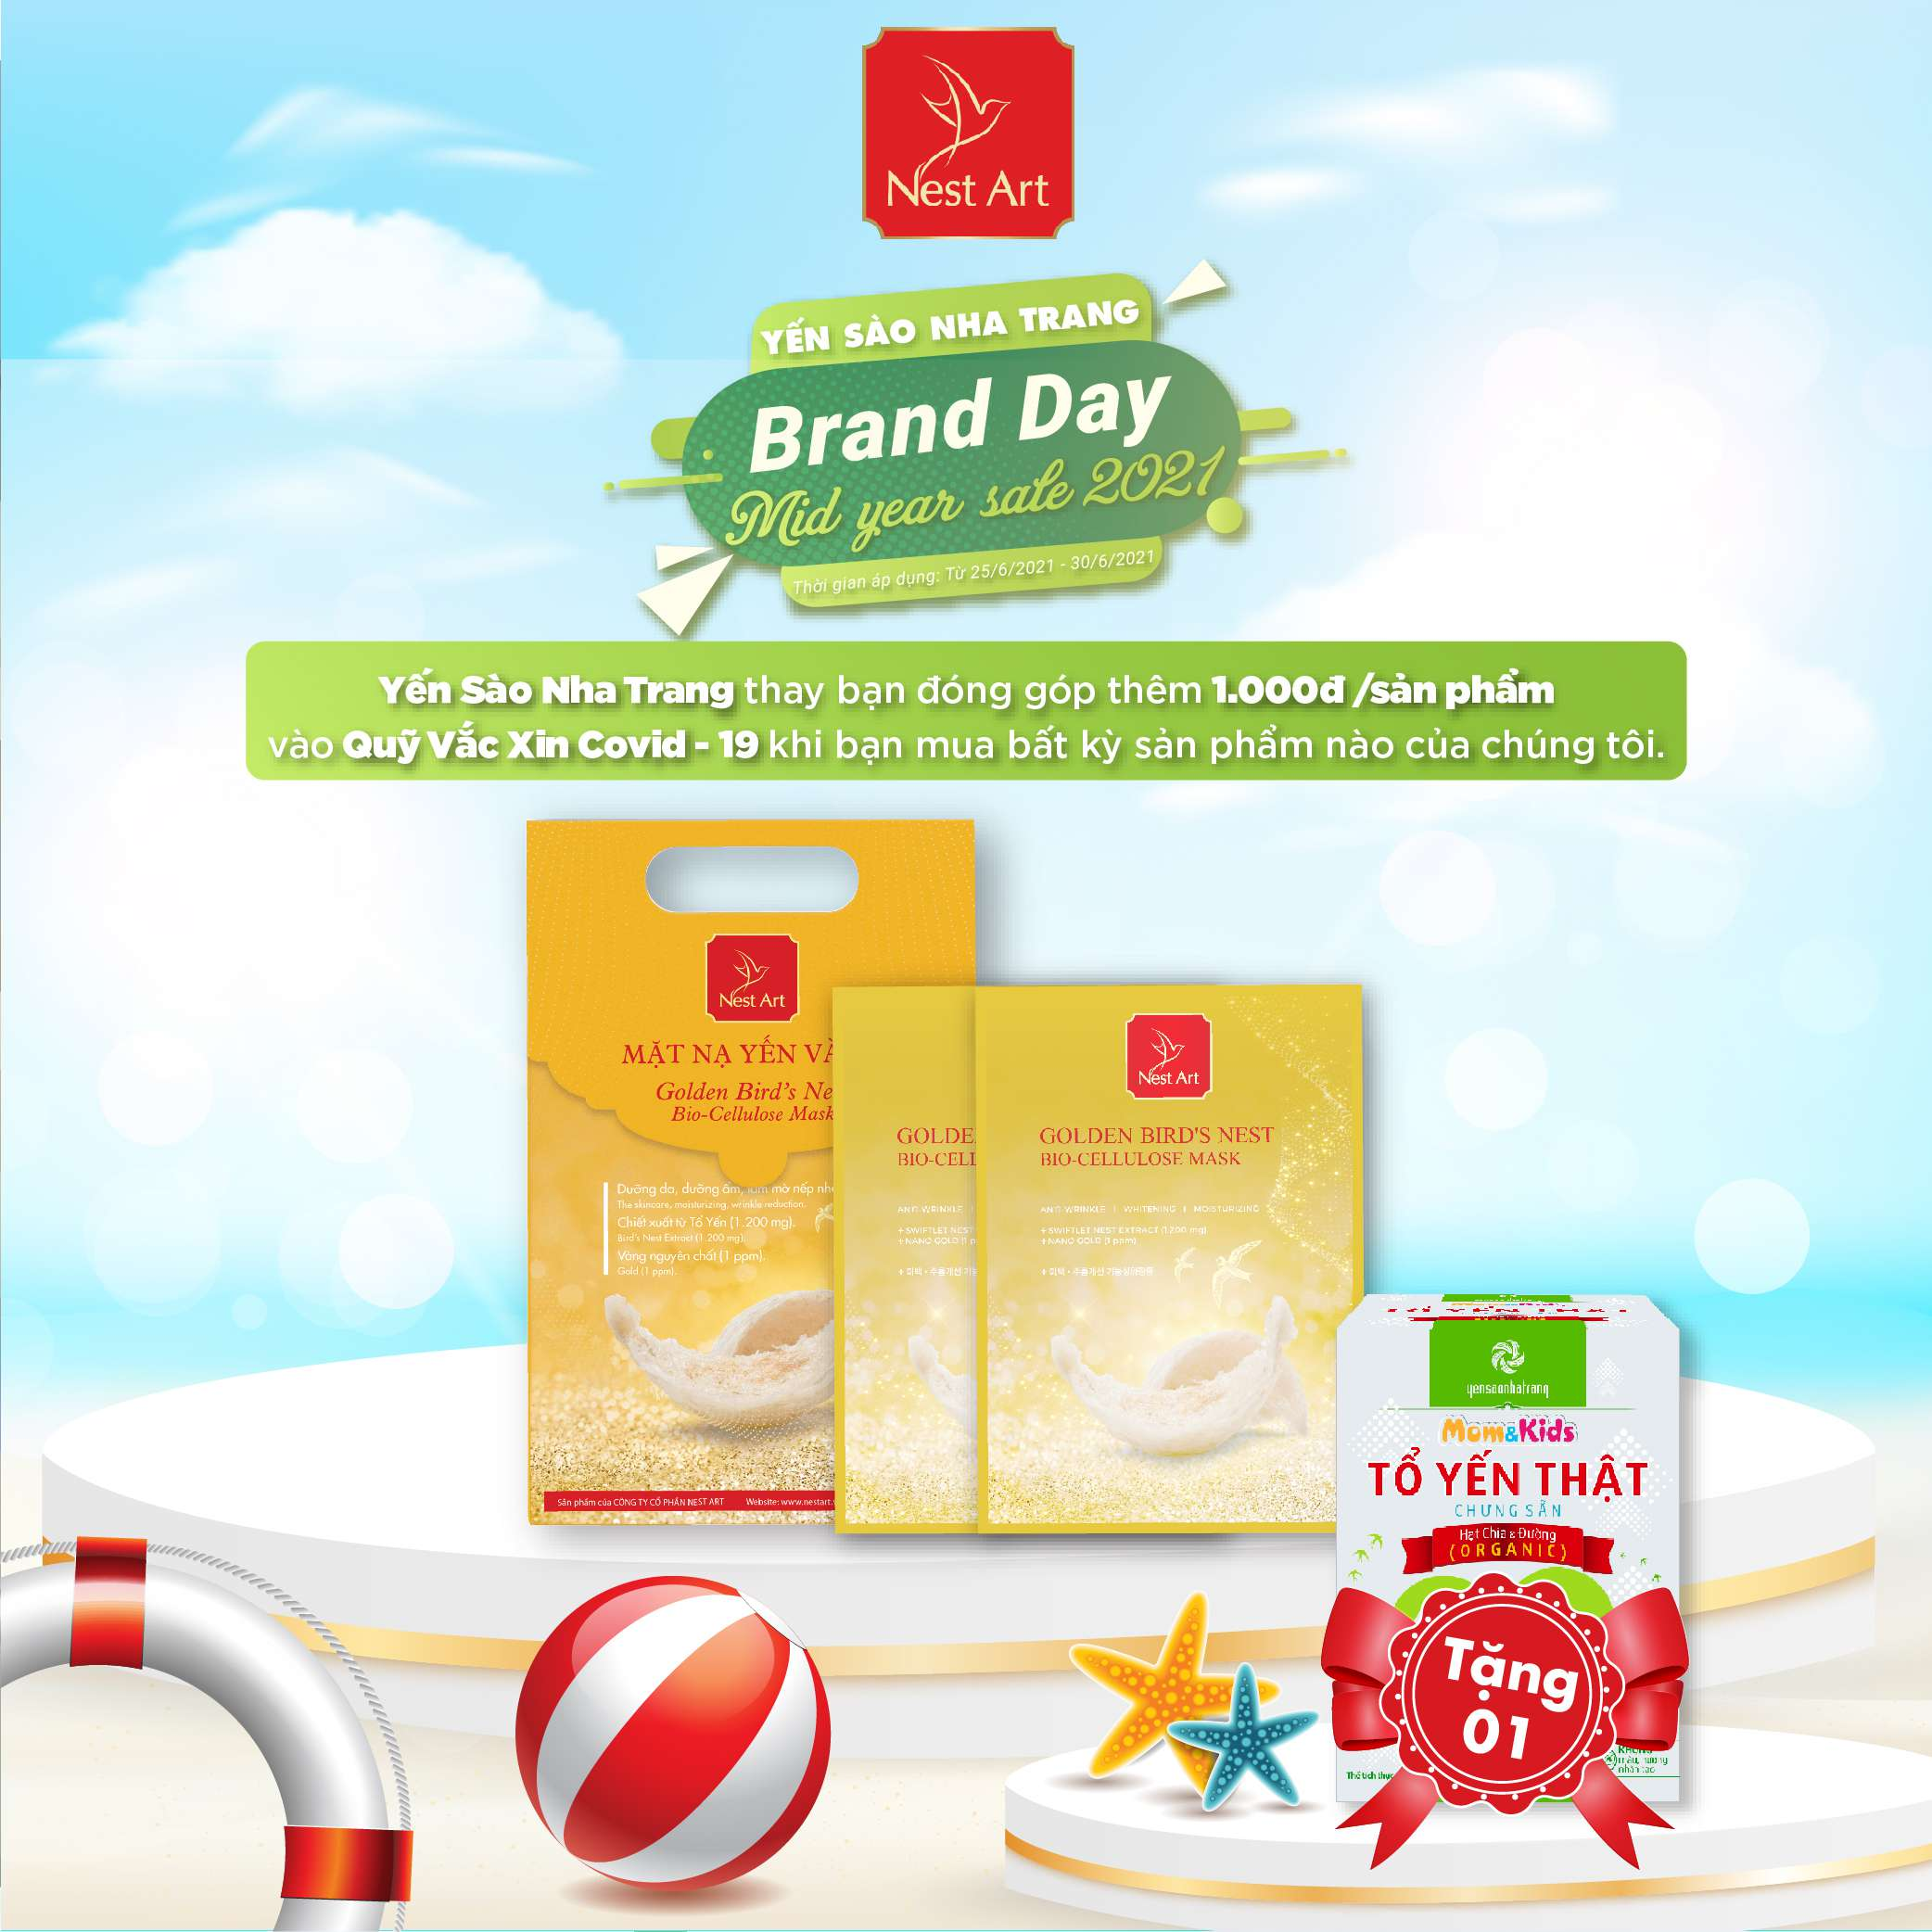 Brand day - Mid year sale 2021-05